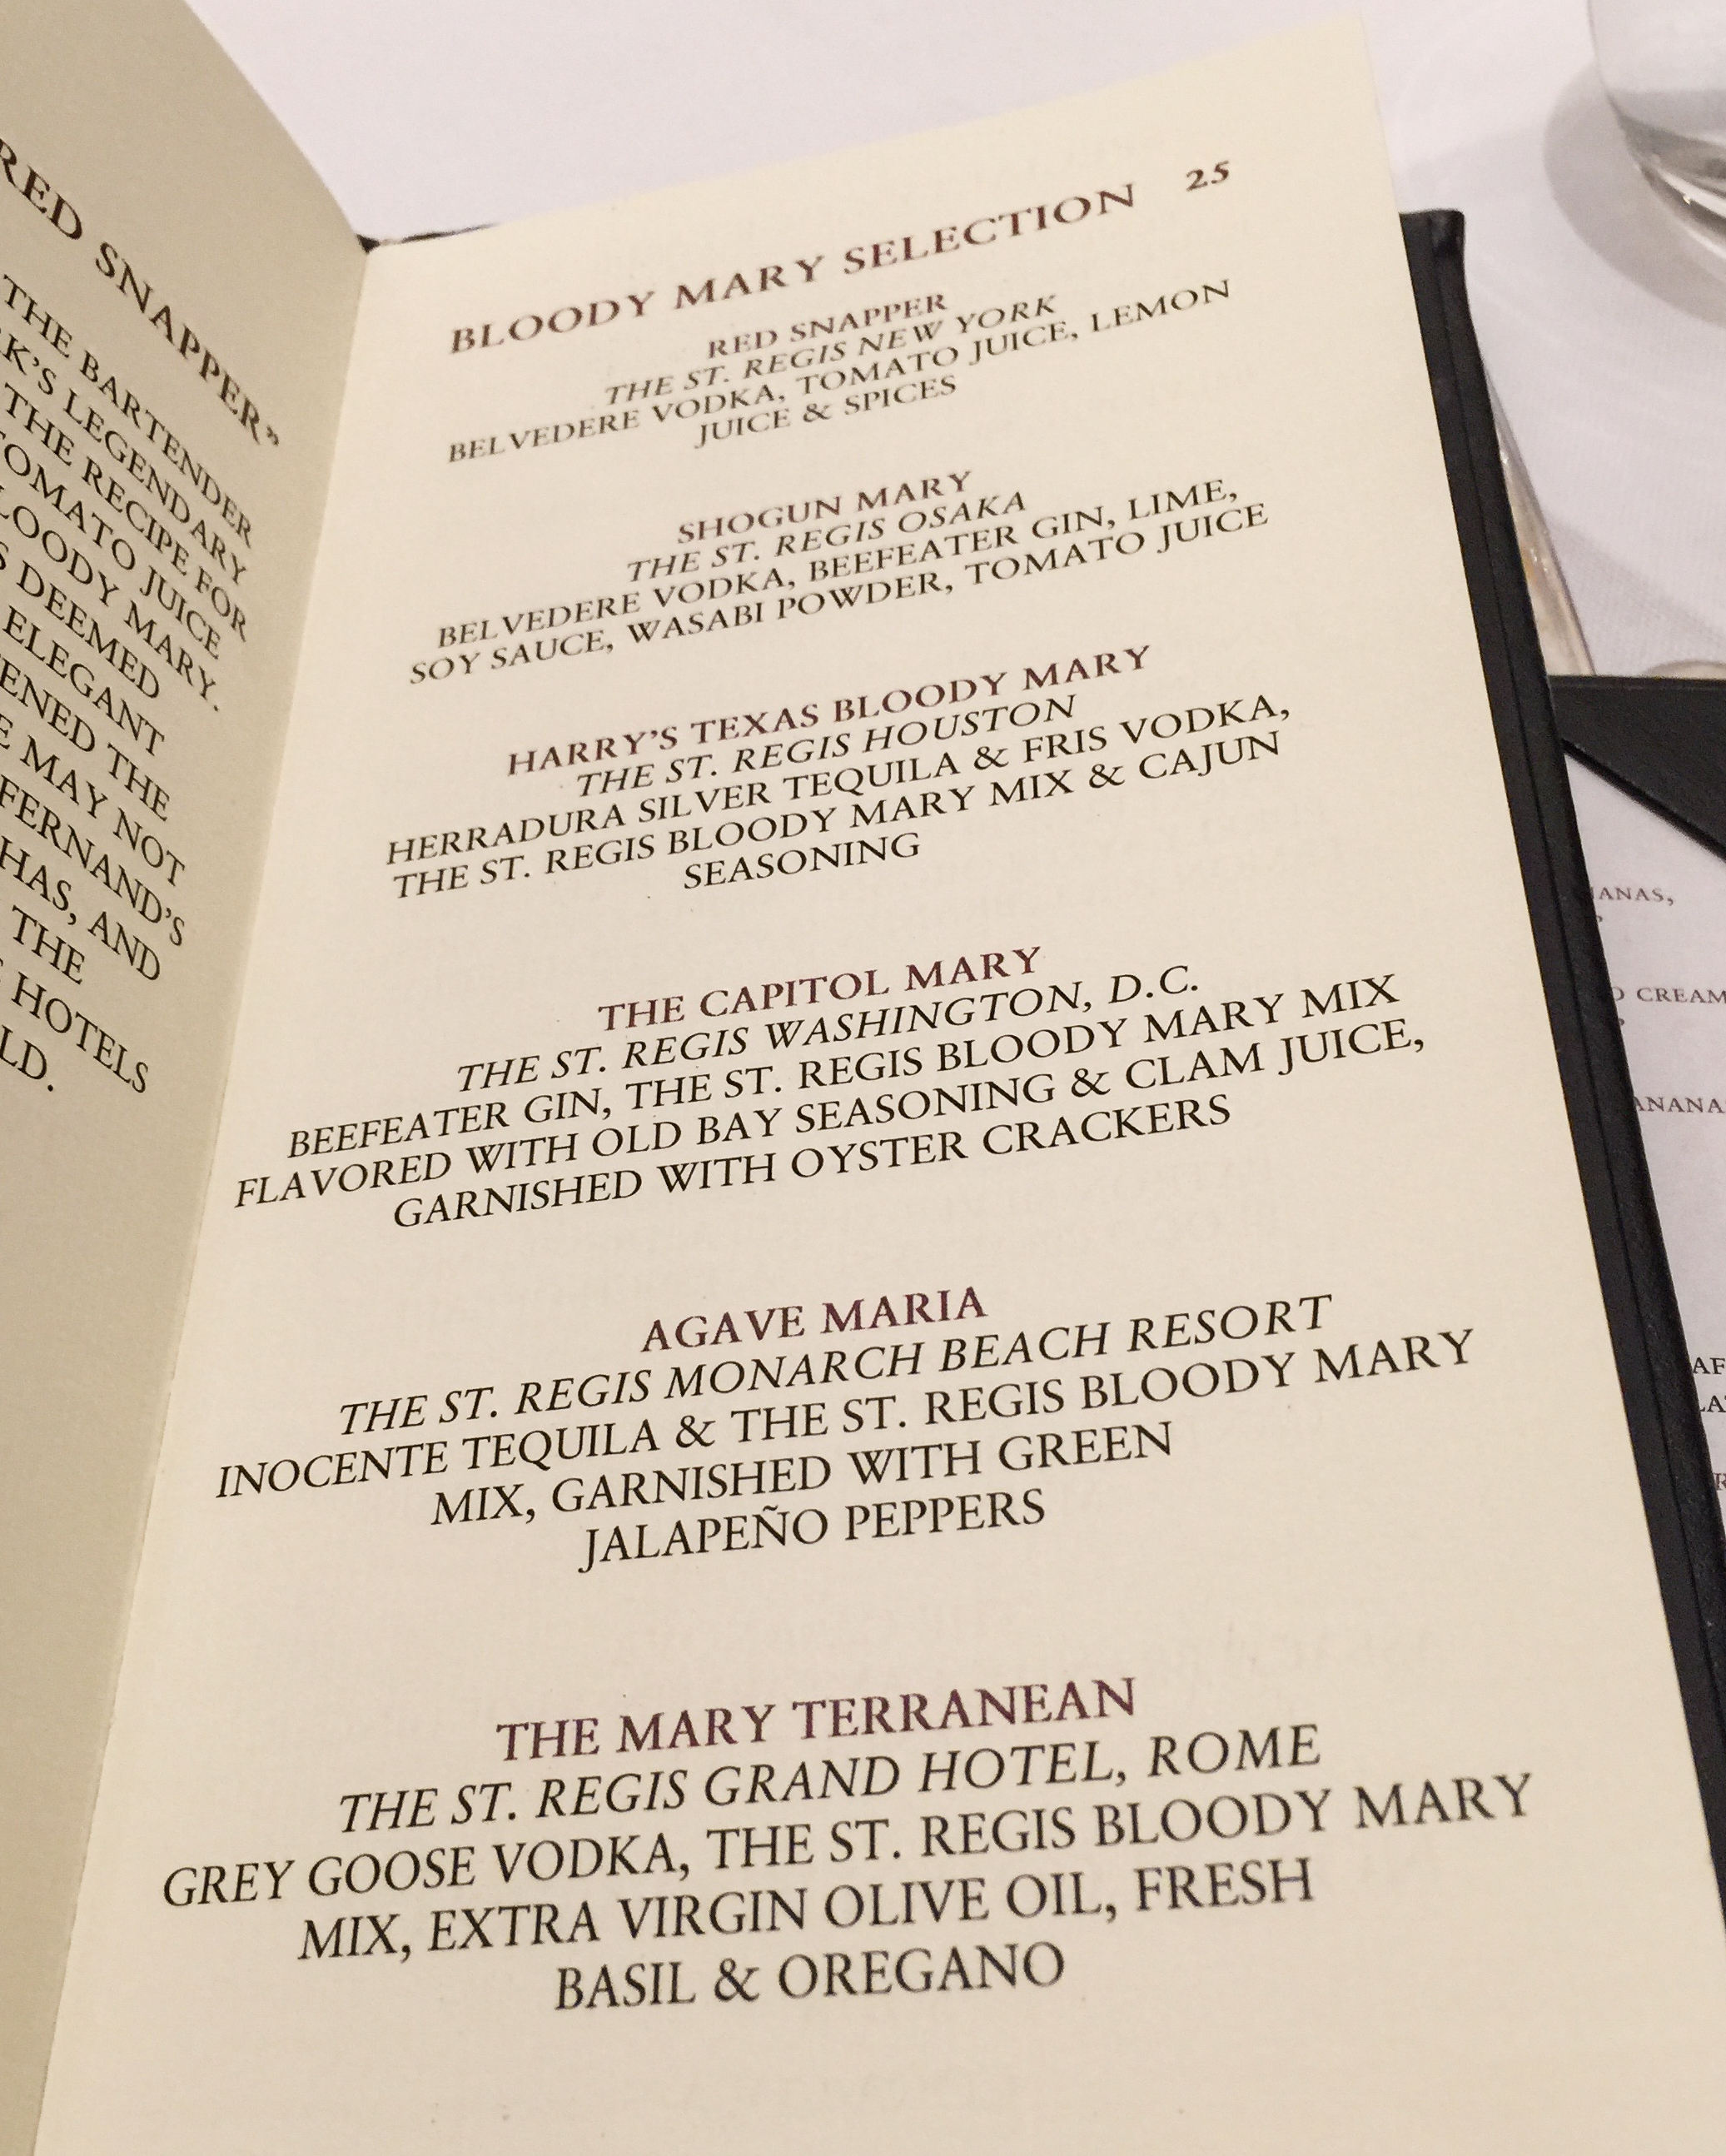 Bloody Mary Menu at the St. Regis